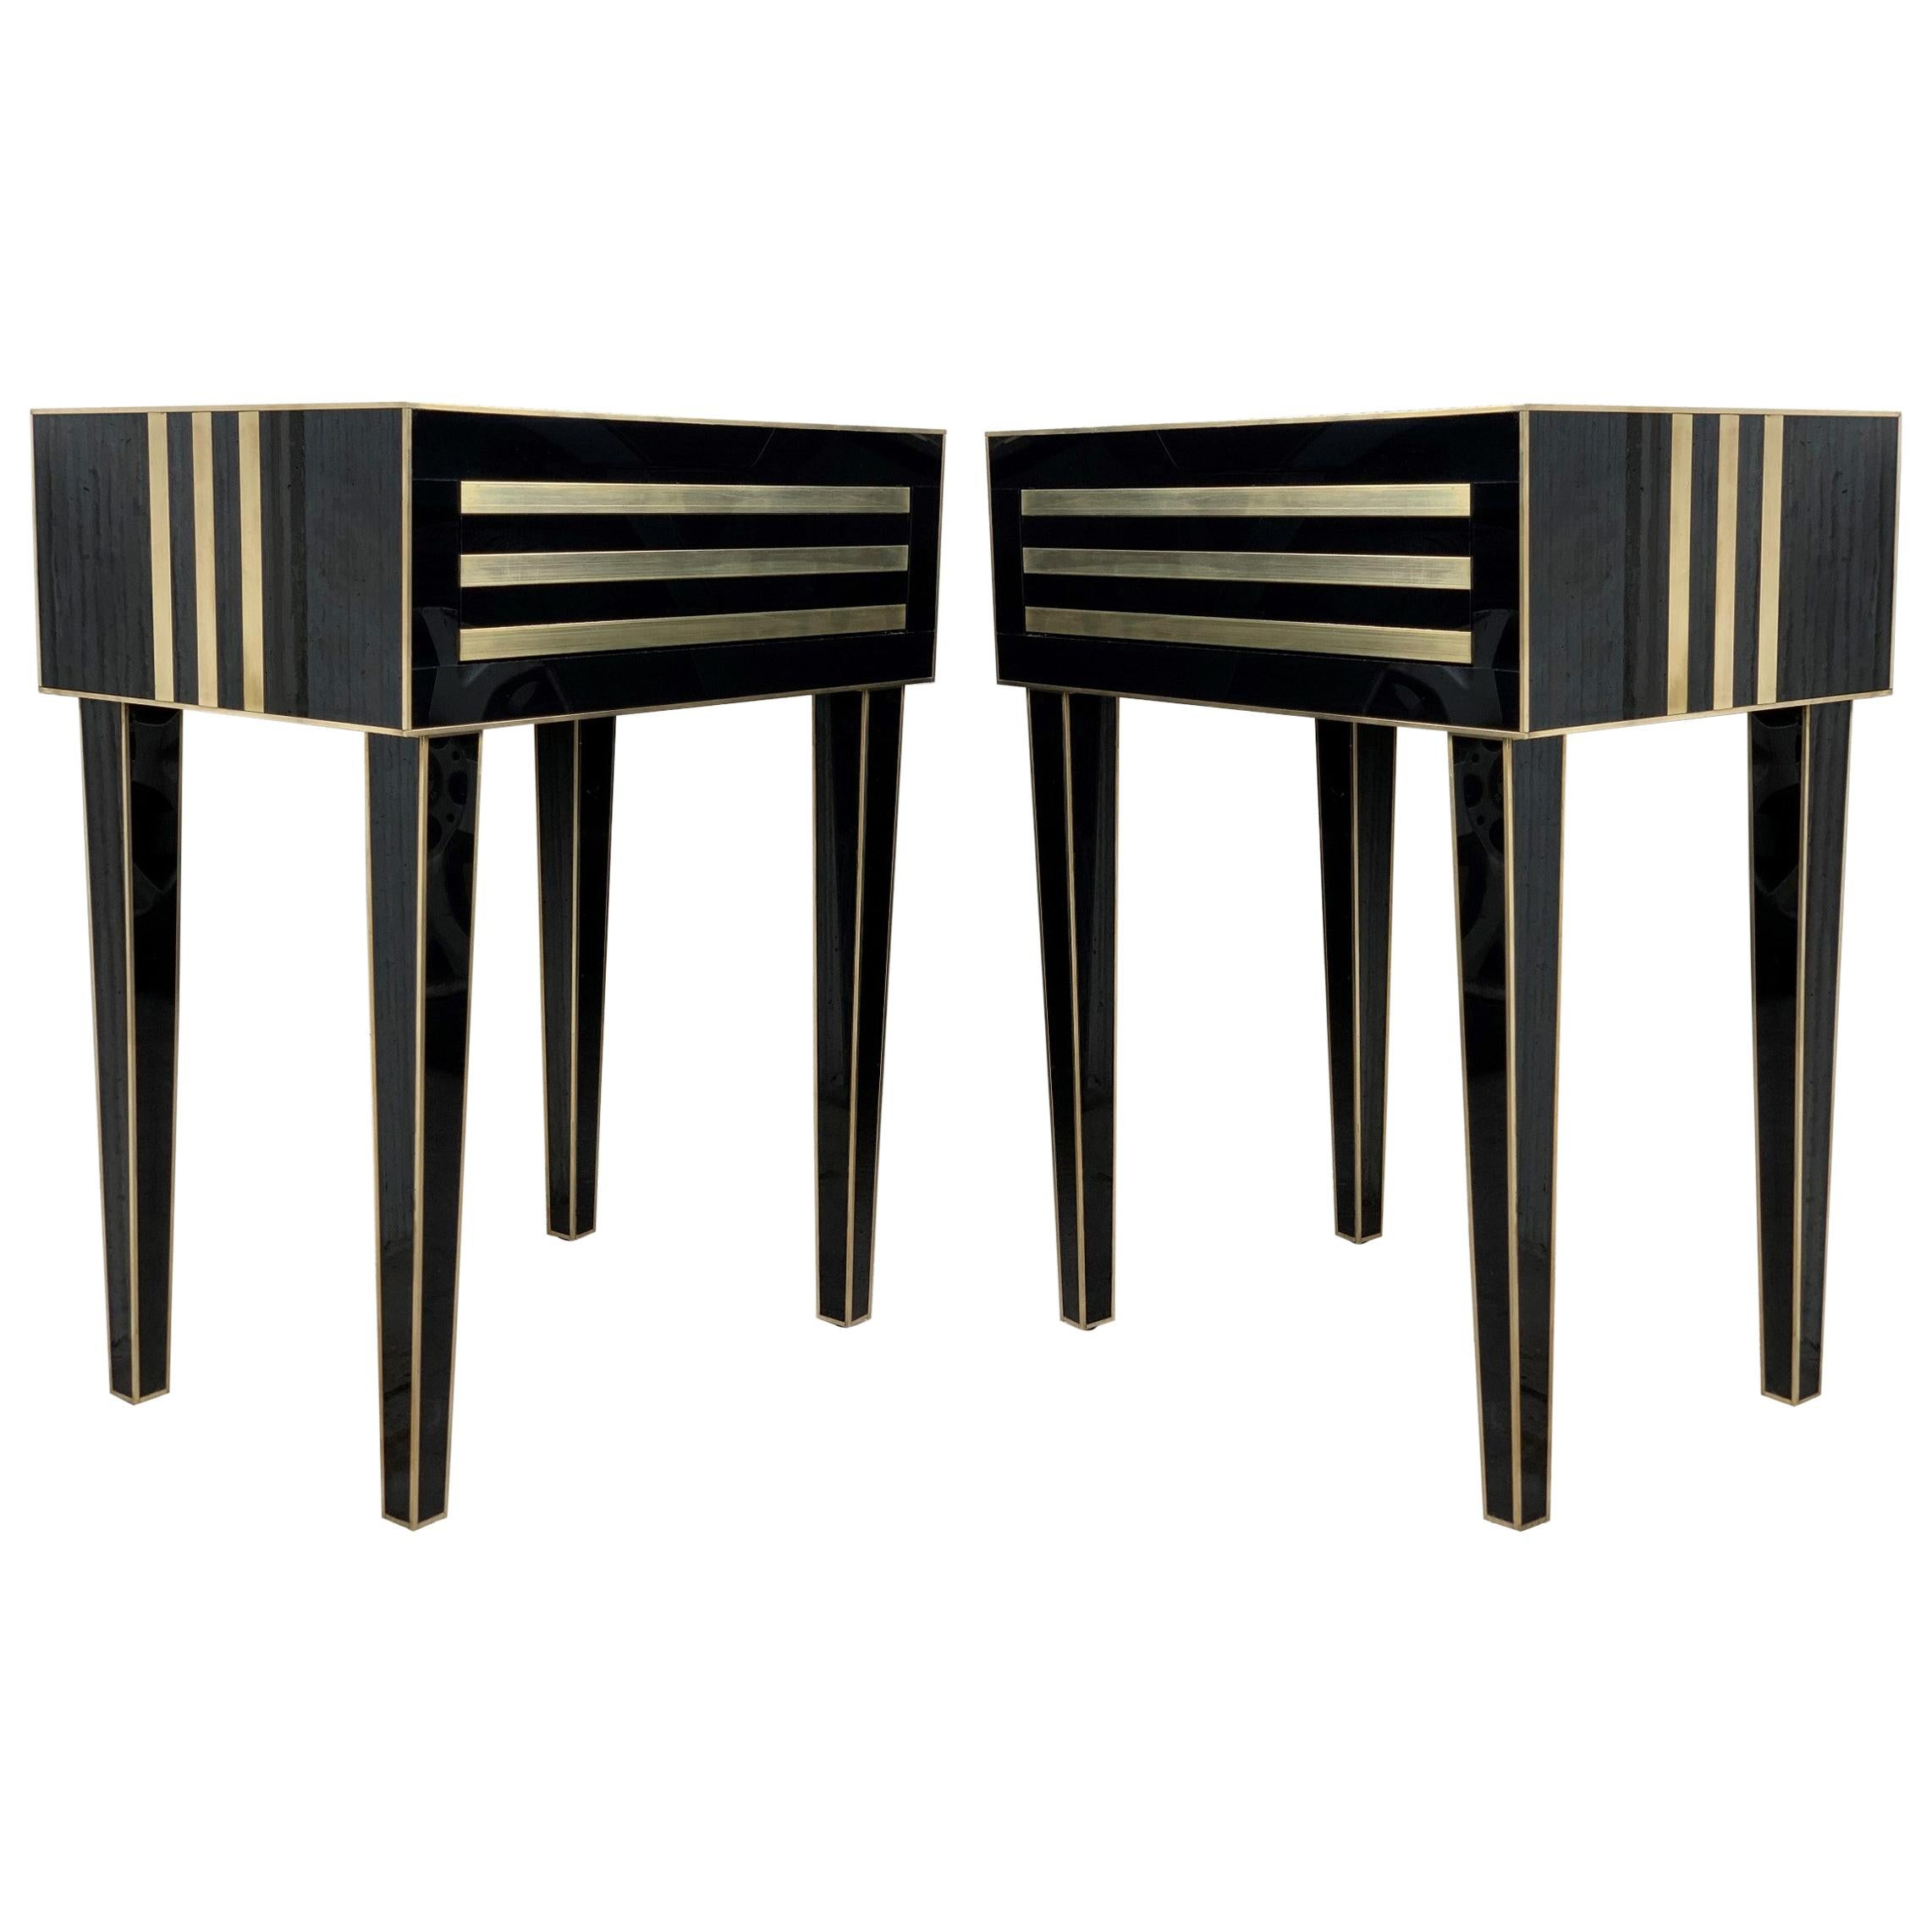 New Pair of High Black and Brass Nightstands with Drawer, Push System Opening